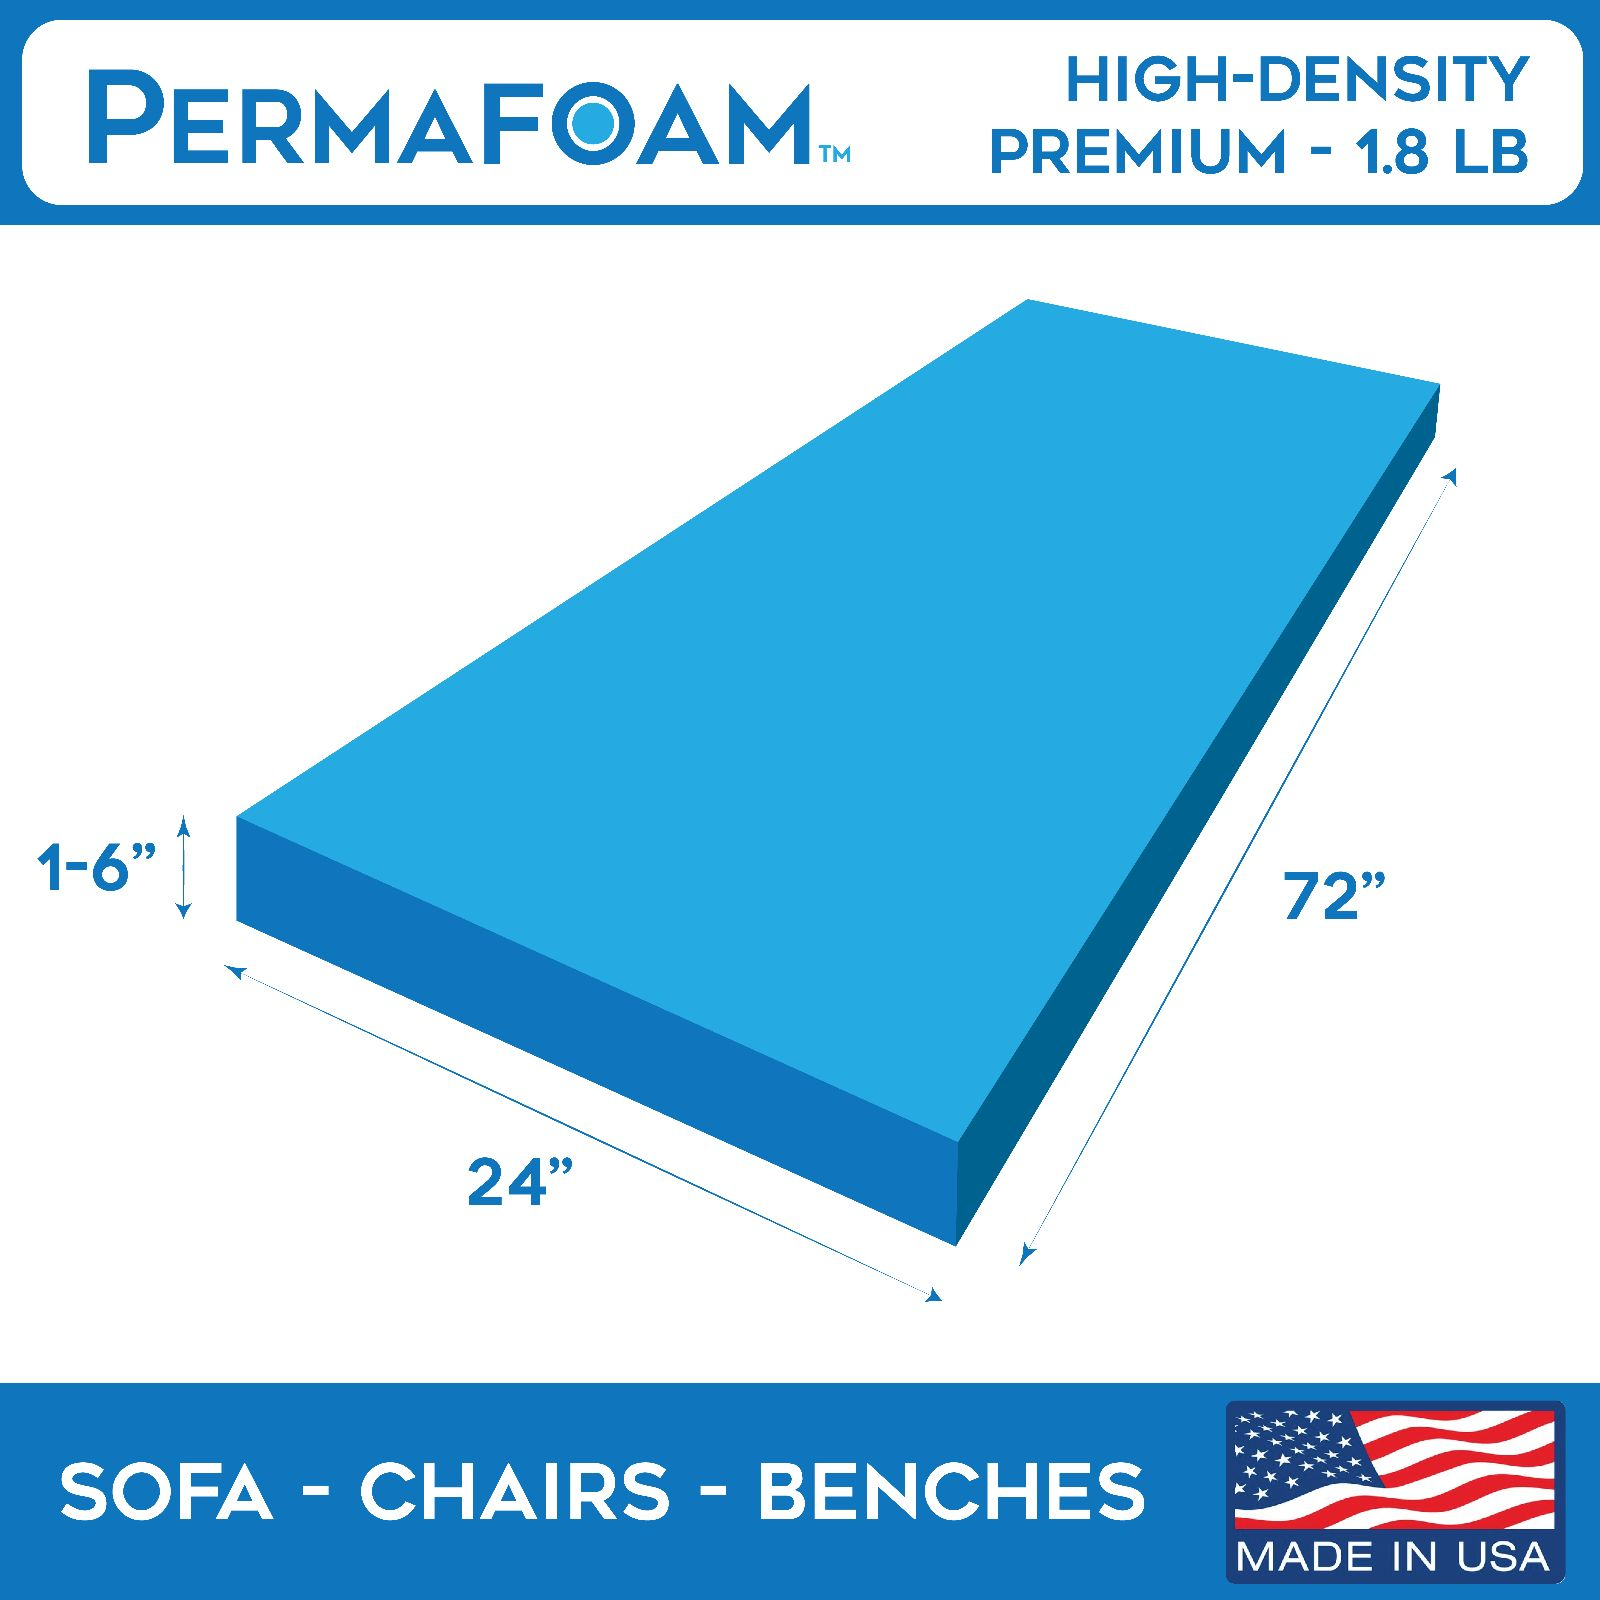 Foam Sheets 8434 Upholstery Cushion 24 X 72 High Density Couches Sofas Benches Chairs It Now Only 55 45 On Ebay